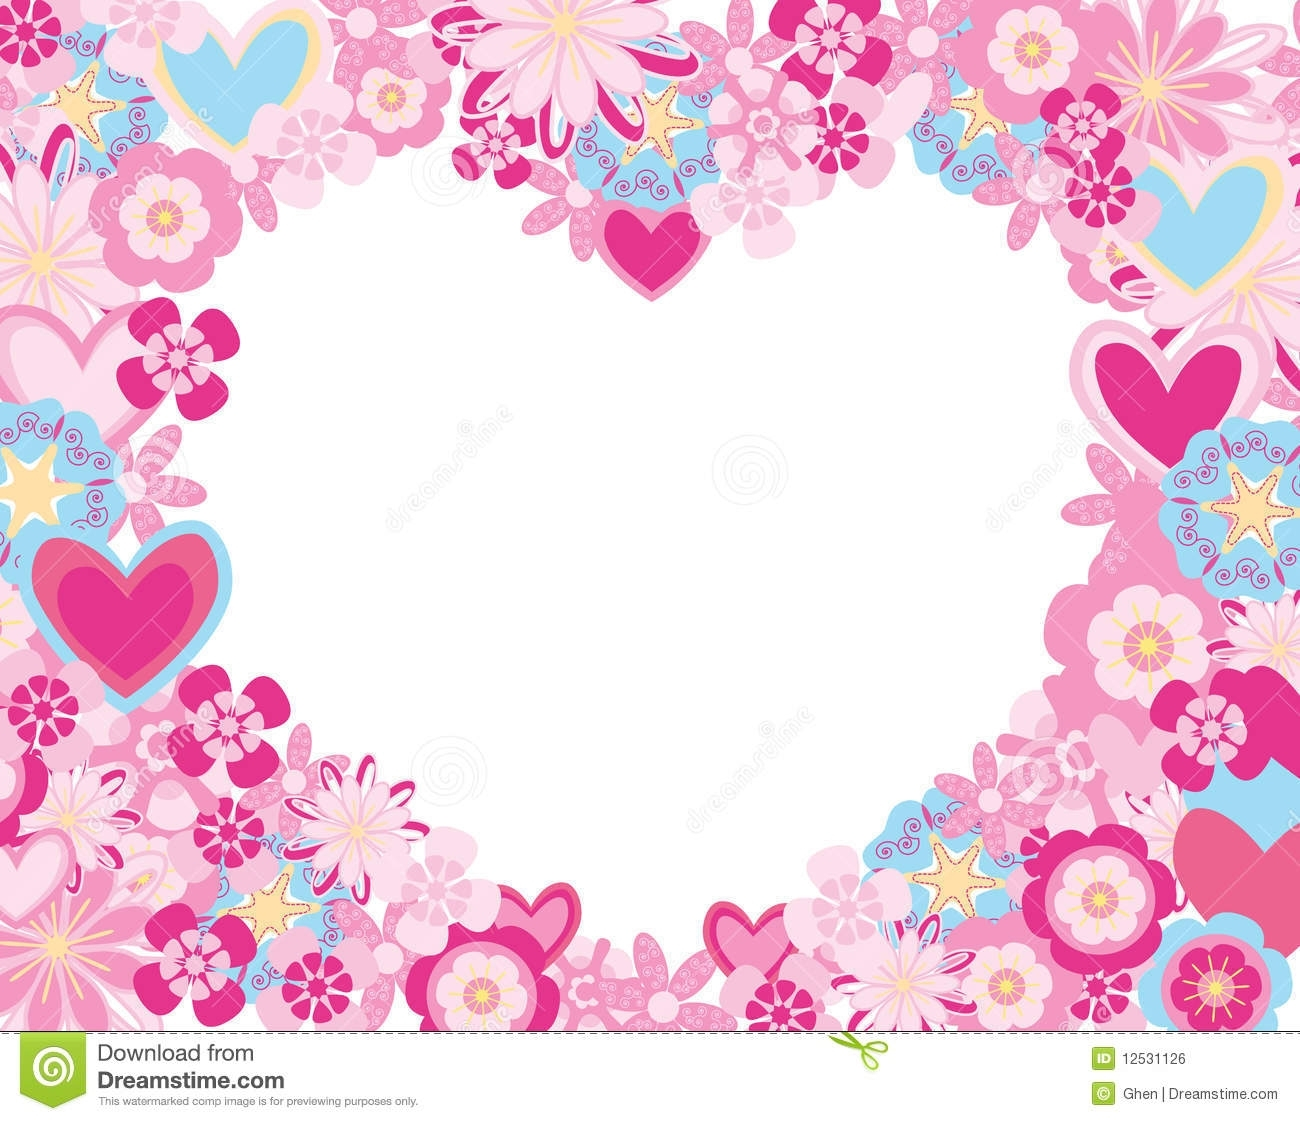 frame made of flowers and hearts stock vector - illustration of